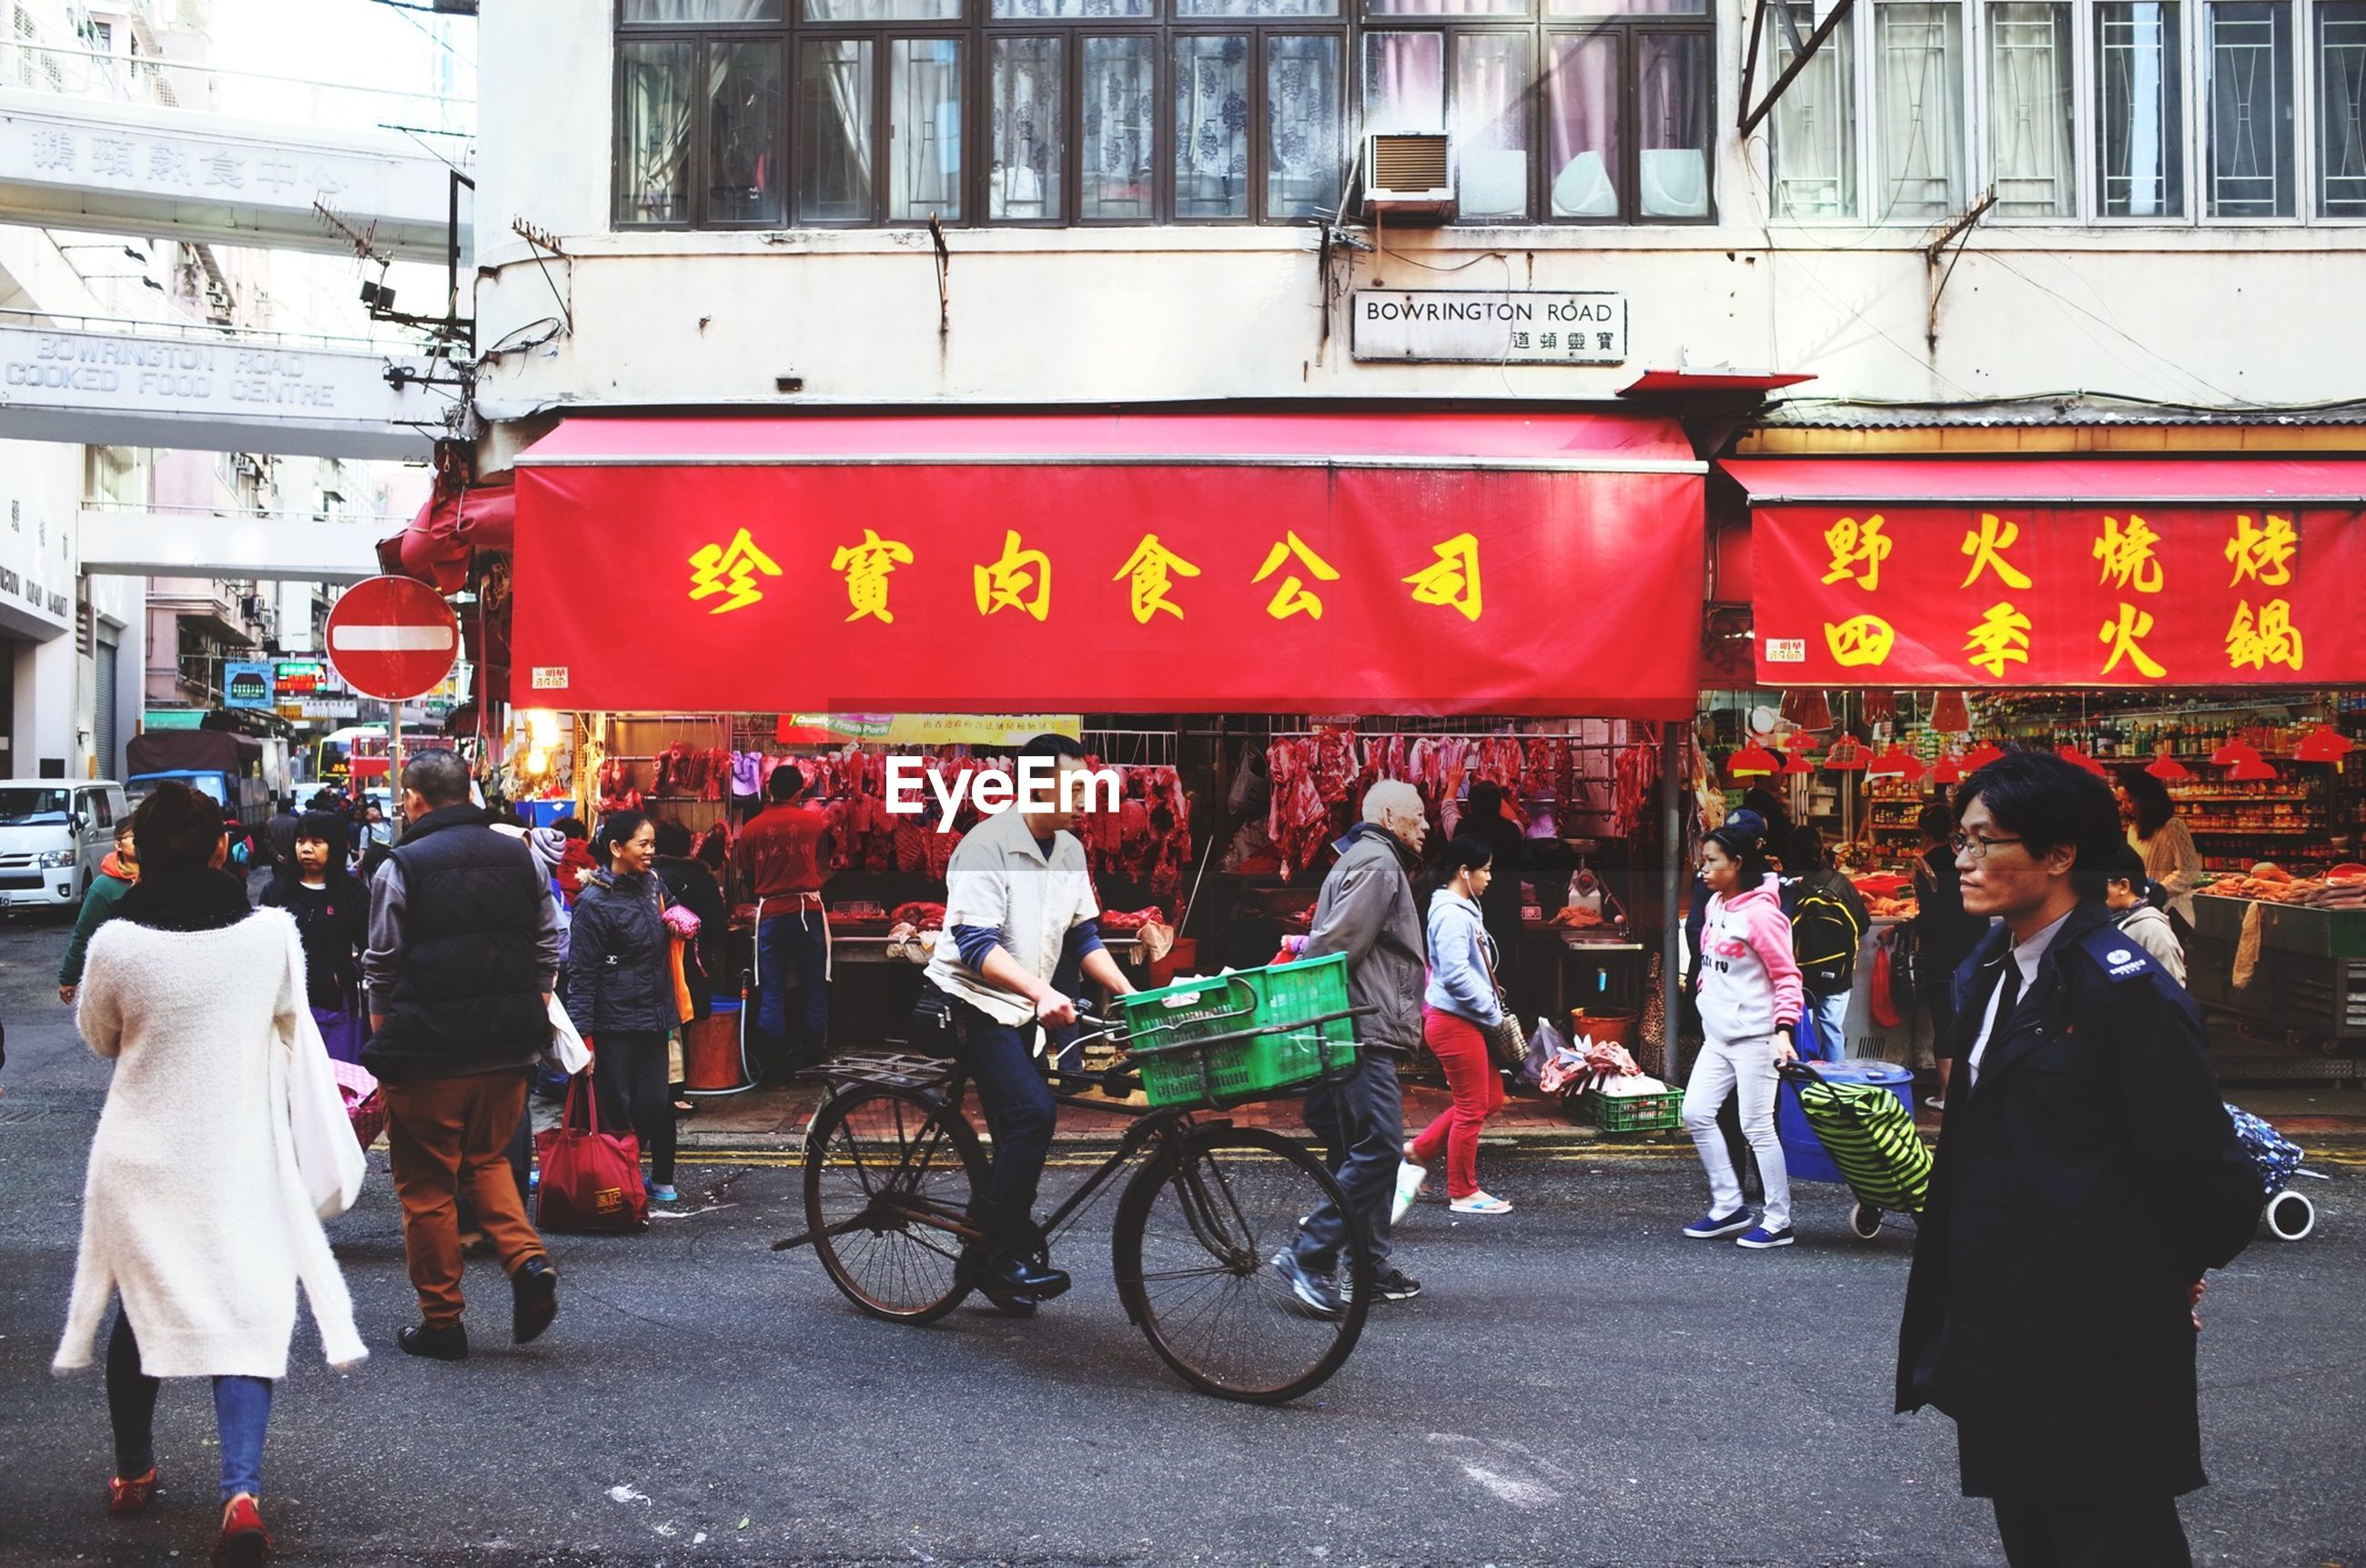 Street life, Bowrington Road Markets, Wan Chai, Hong Kong. Open Edit HongKong Streetphotography Travel Photography